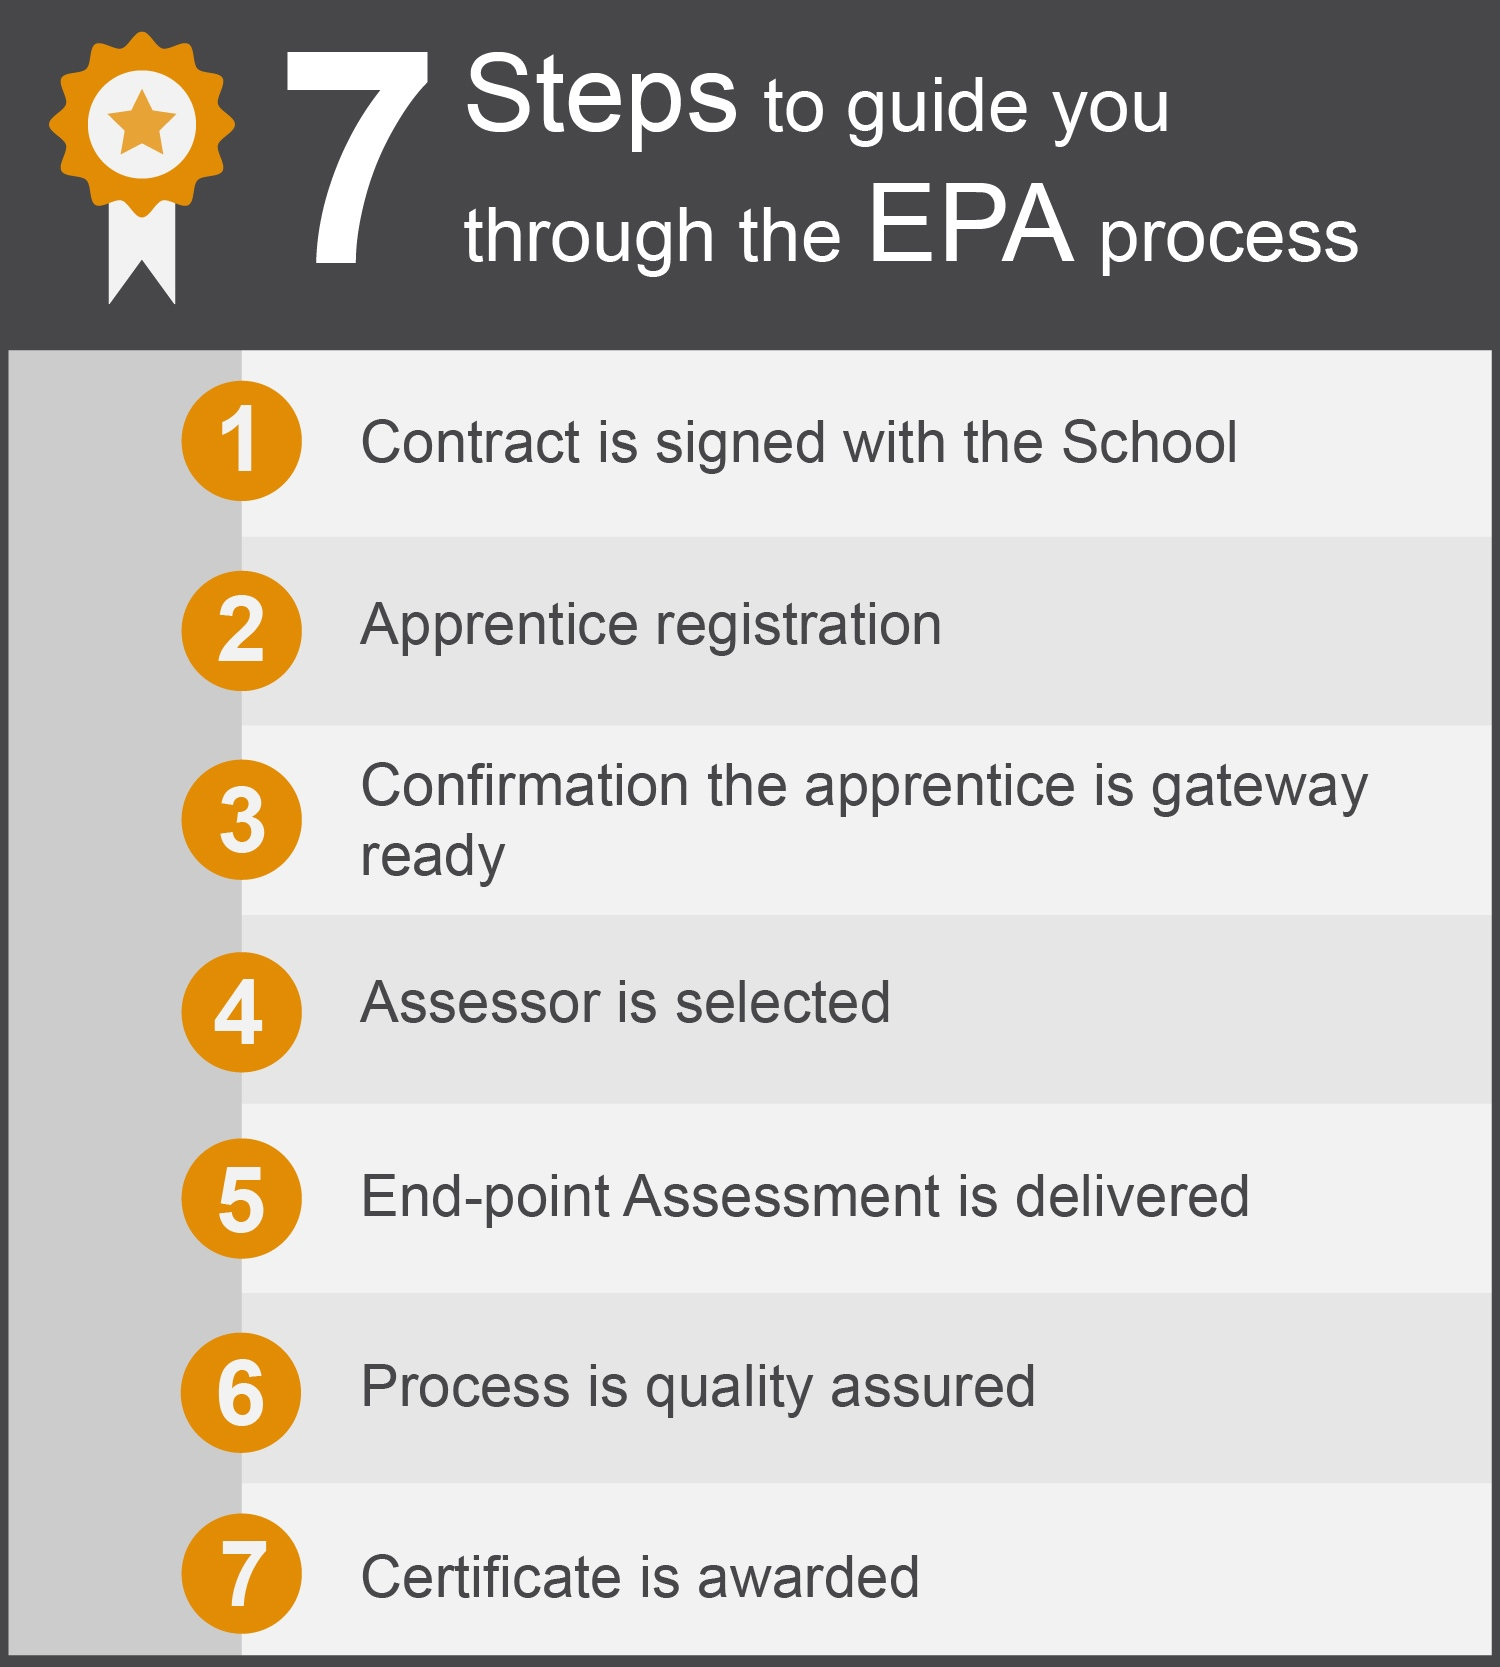 Infographic to explain the steps to guide you through the EPA process